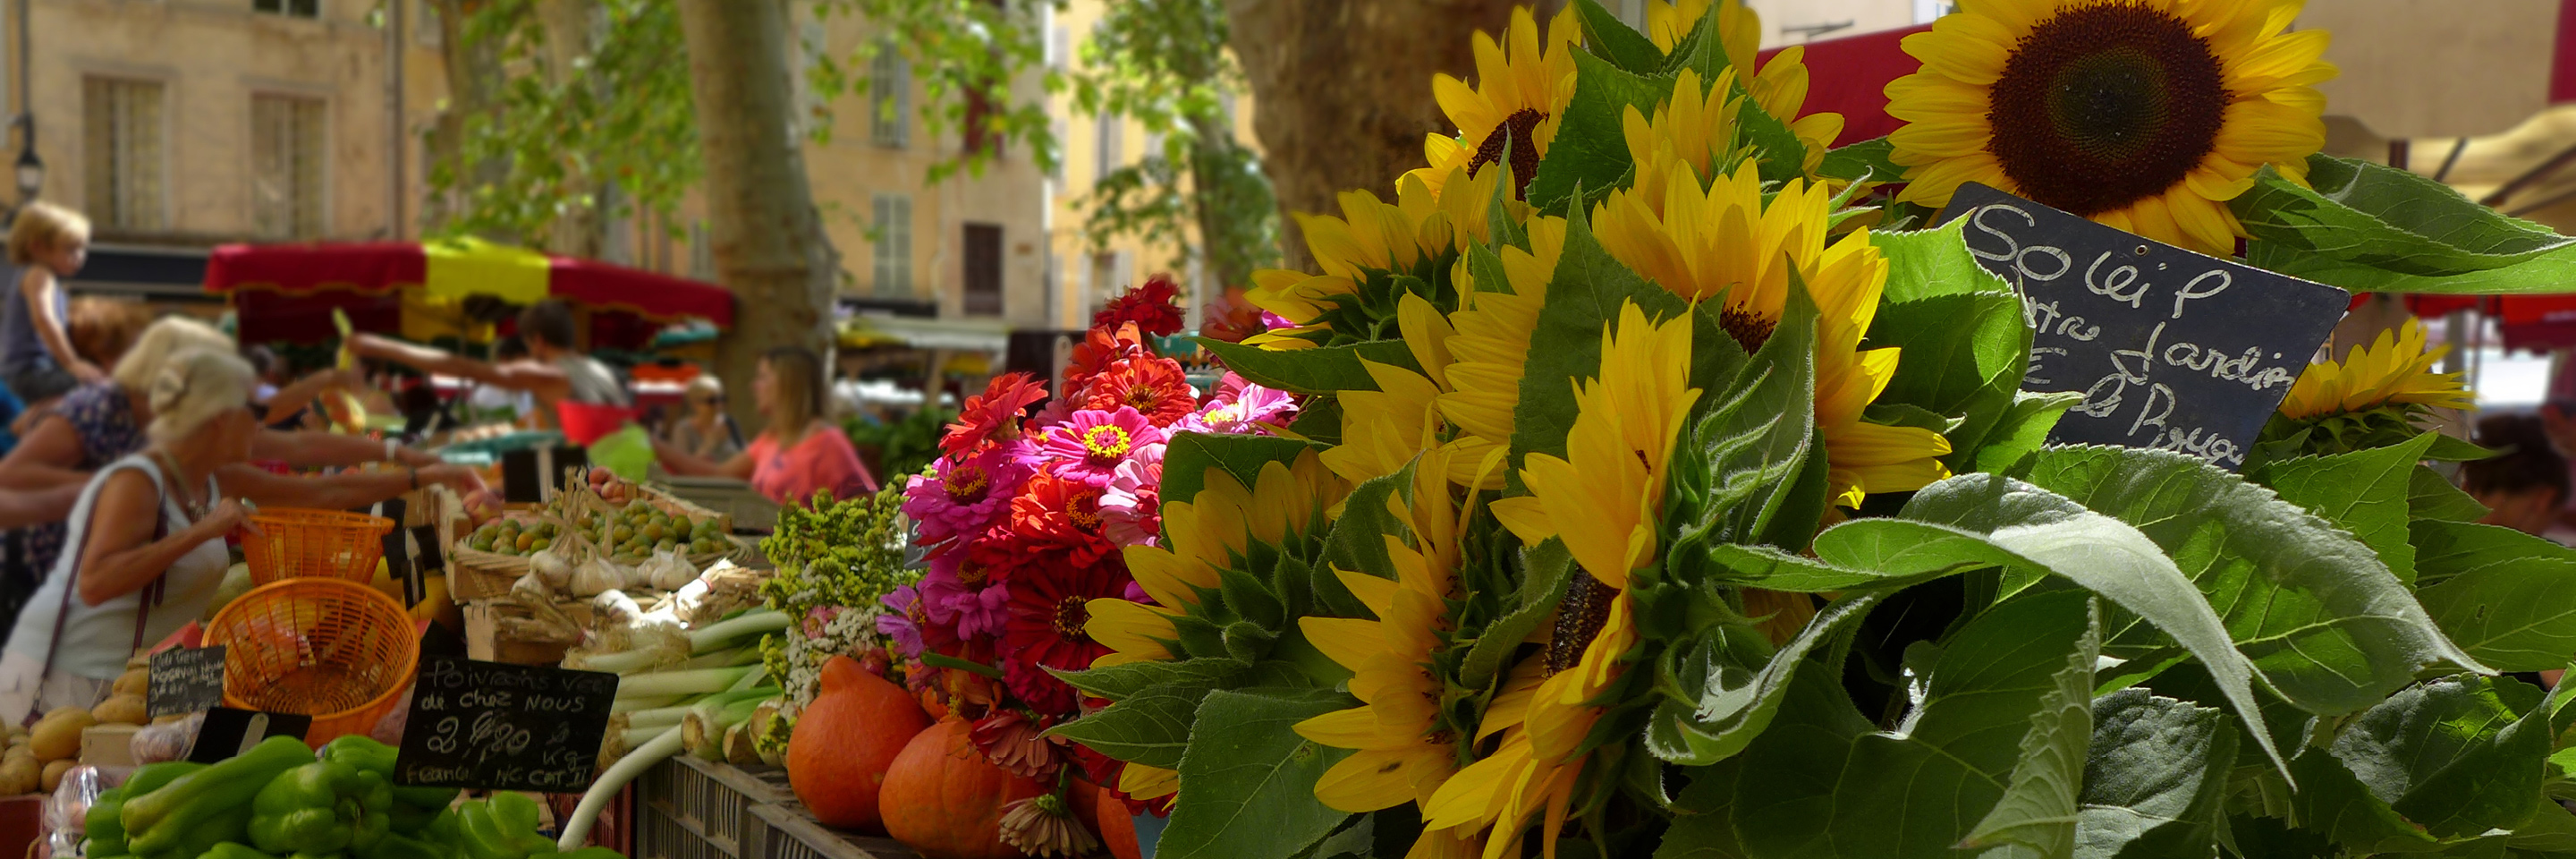 Burgundy and Provence with 2 nights in Paris, 2 nights in Aix-en-Provence & 2 nights in Nice